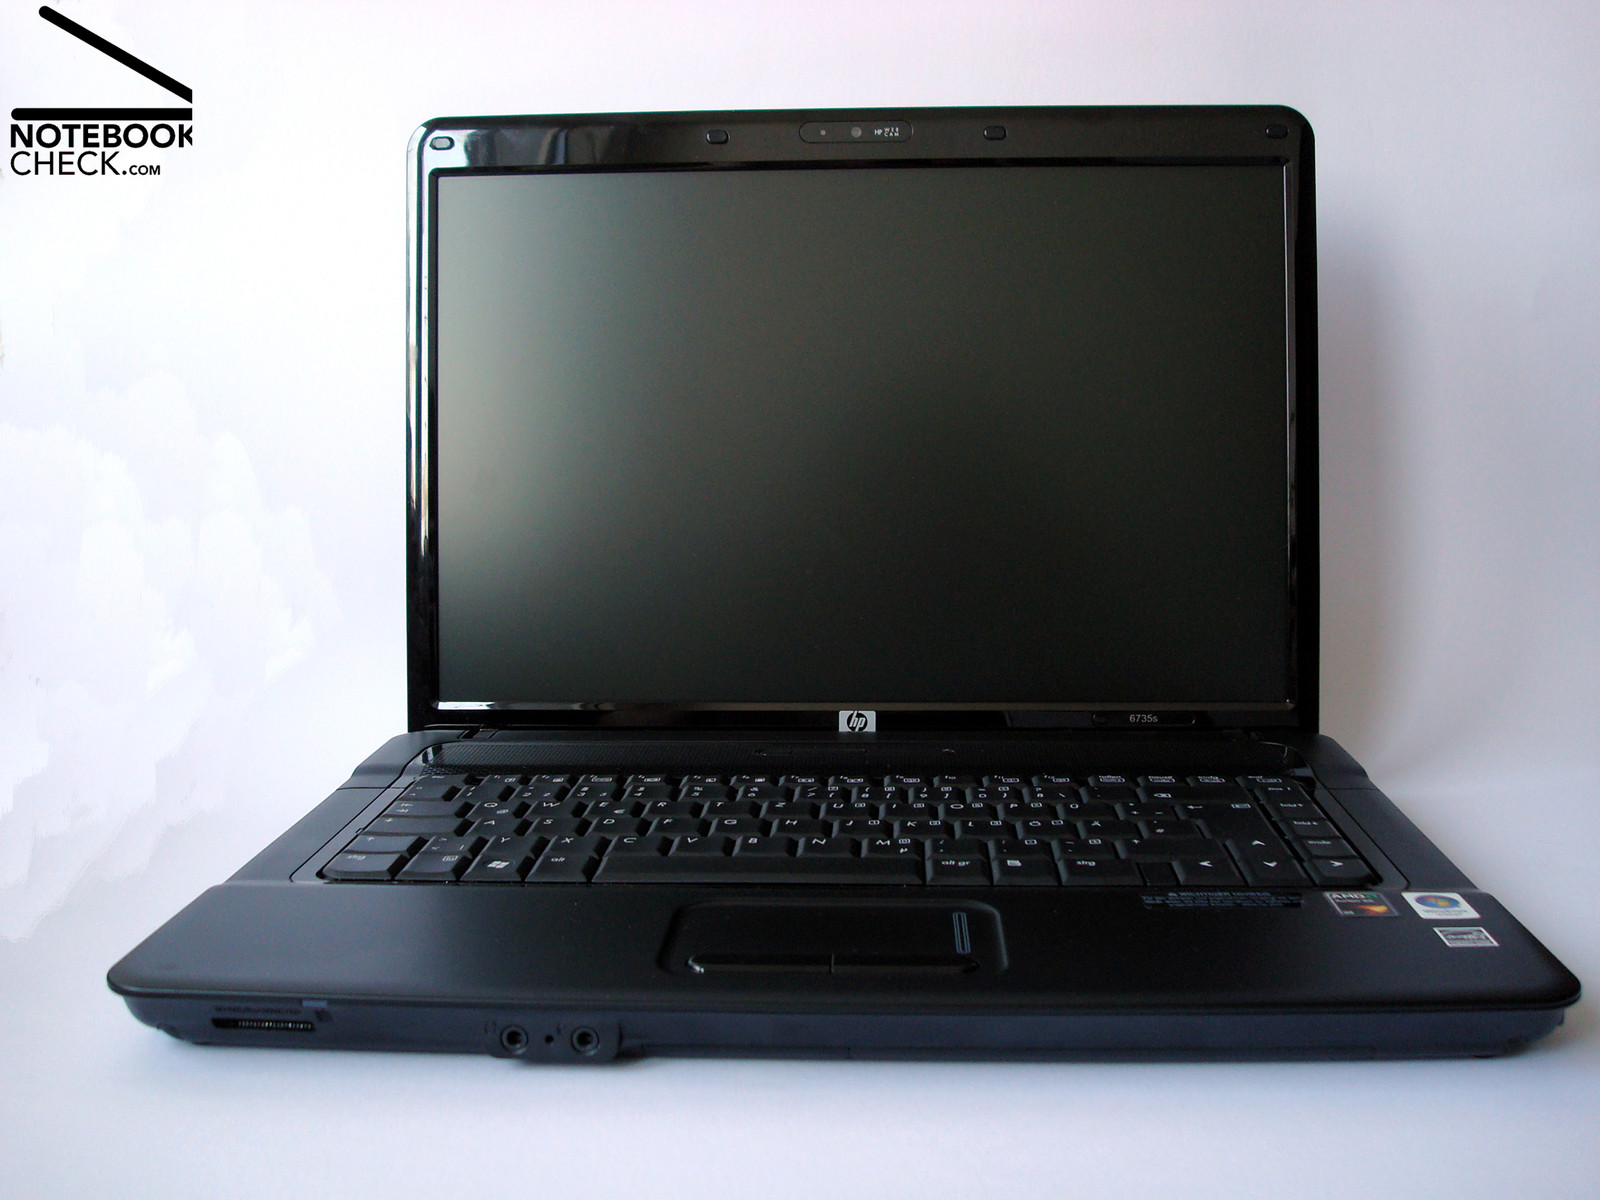 HP COMPAQ 6730S NOTEBOOK SYNAPTICS TOUCHPAD DRIVER DOWNLOAD